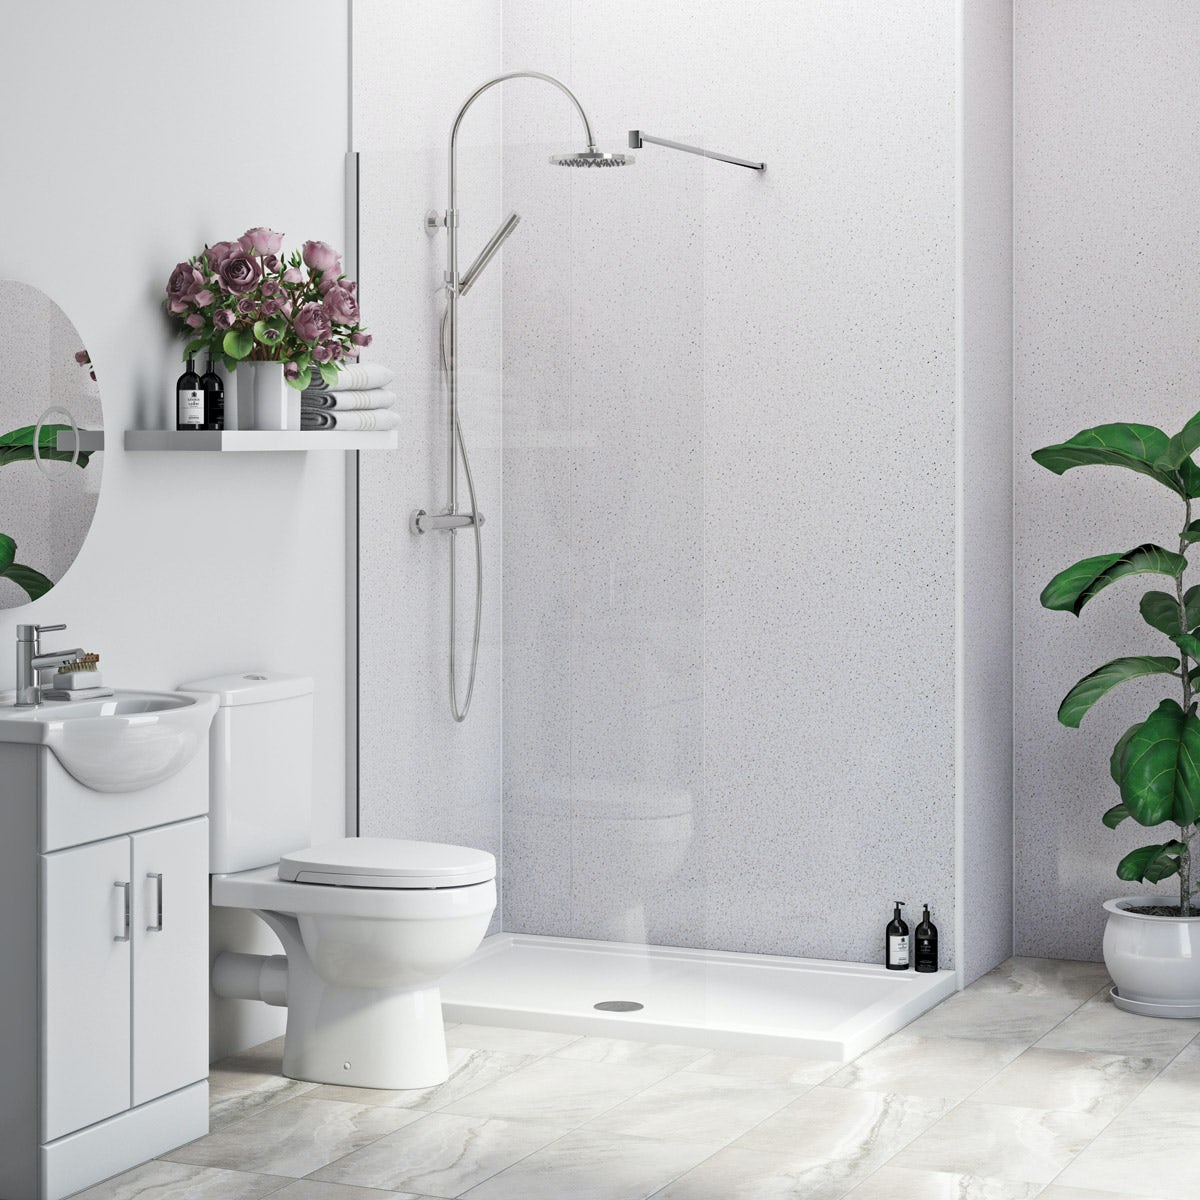 Multipanel Economy Sunlit Quartz shower wall 2 panel pack